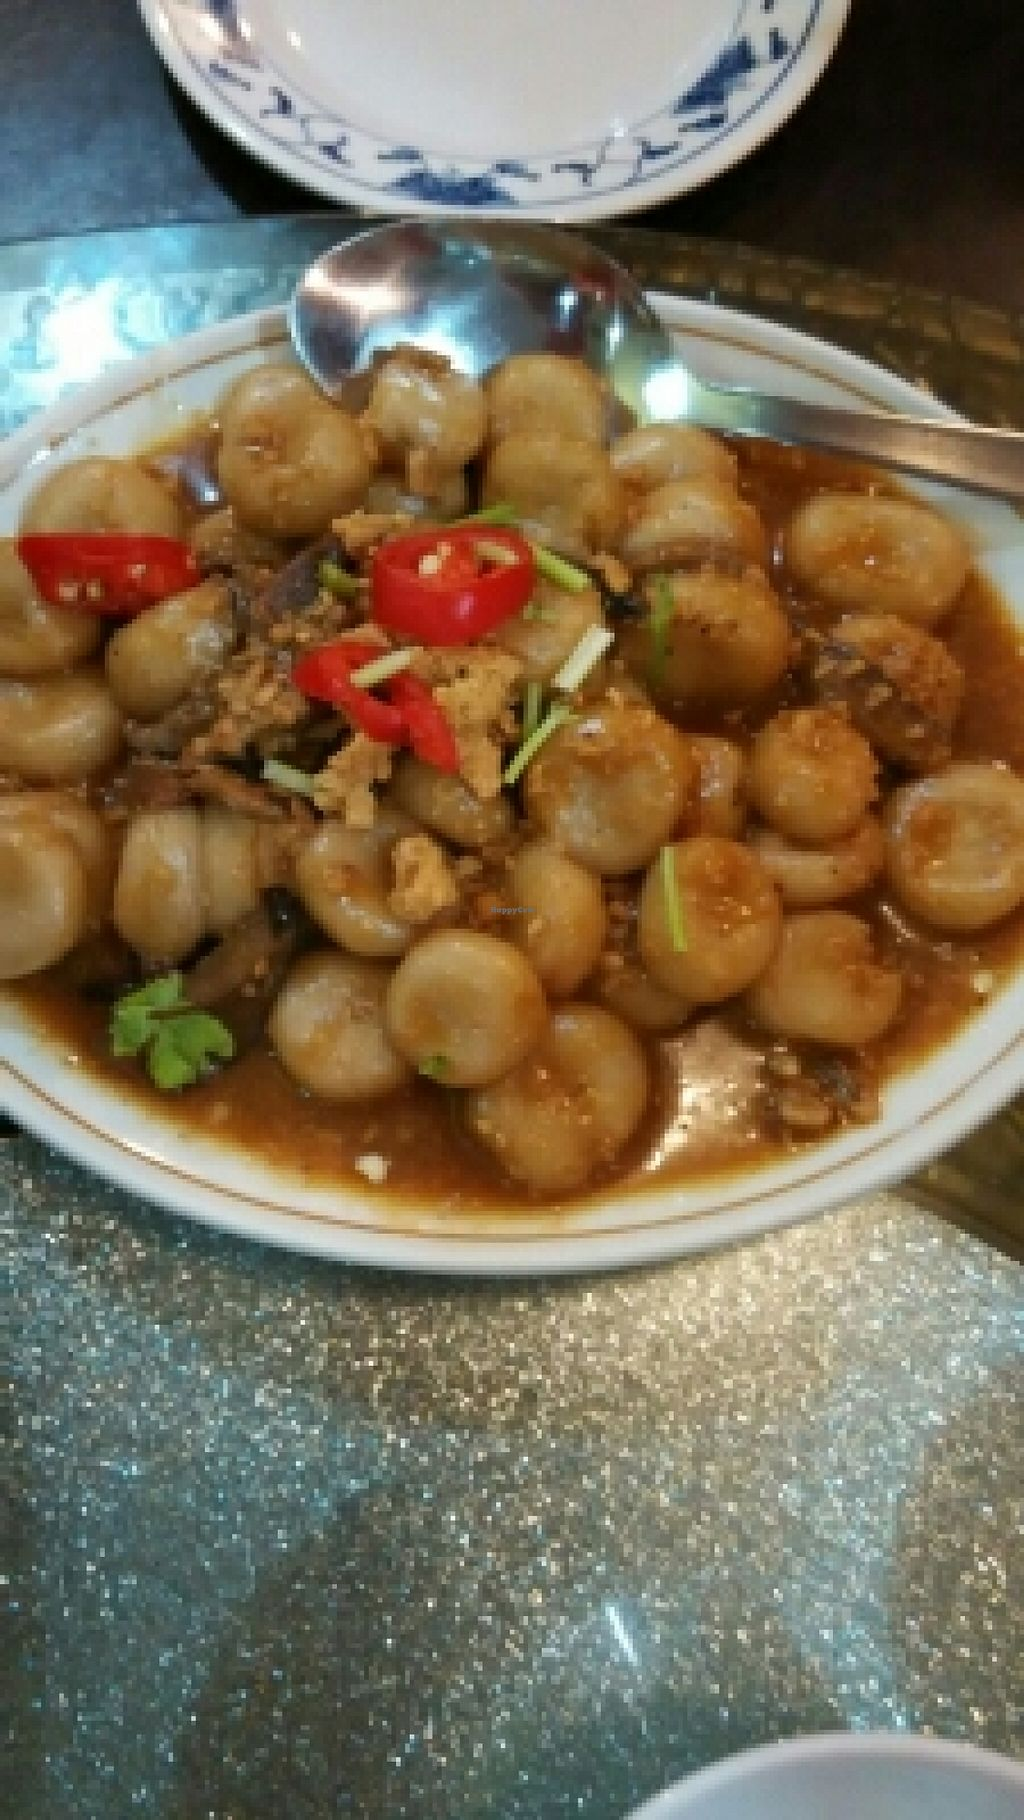 """Photo of Nature Vegetarian Delights  by <a href=""""/members/profile/JimmySeah"""">JimmySeah</a> <br/>fried 'abacus' <br/> October 17, 2015  - <a href='/contact/abuse/image/6162/121581'>Report</a>"""